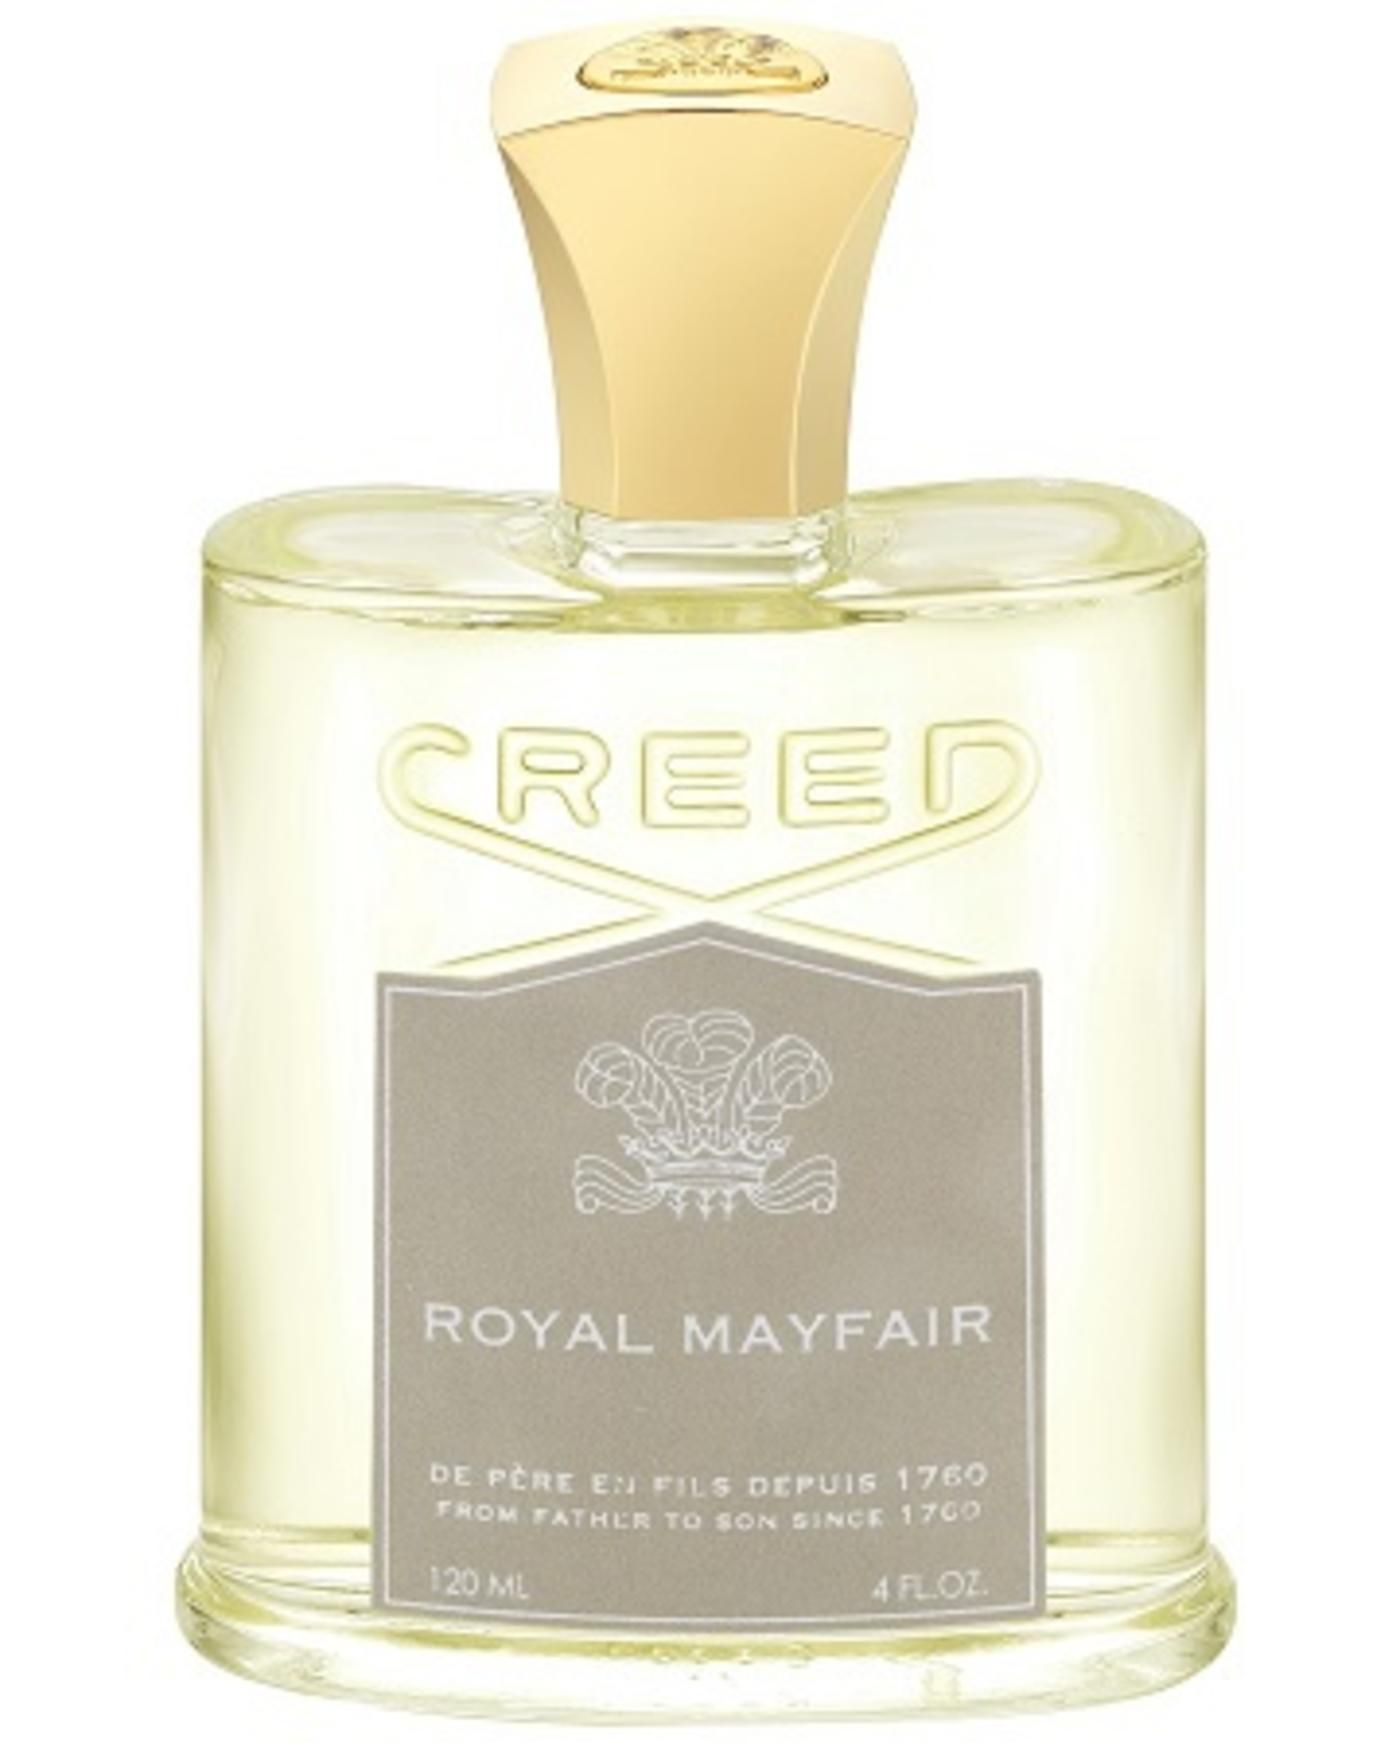 Inspired by menswear, Creed releases their Royal Mayfair